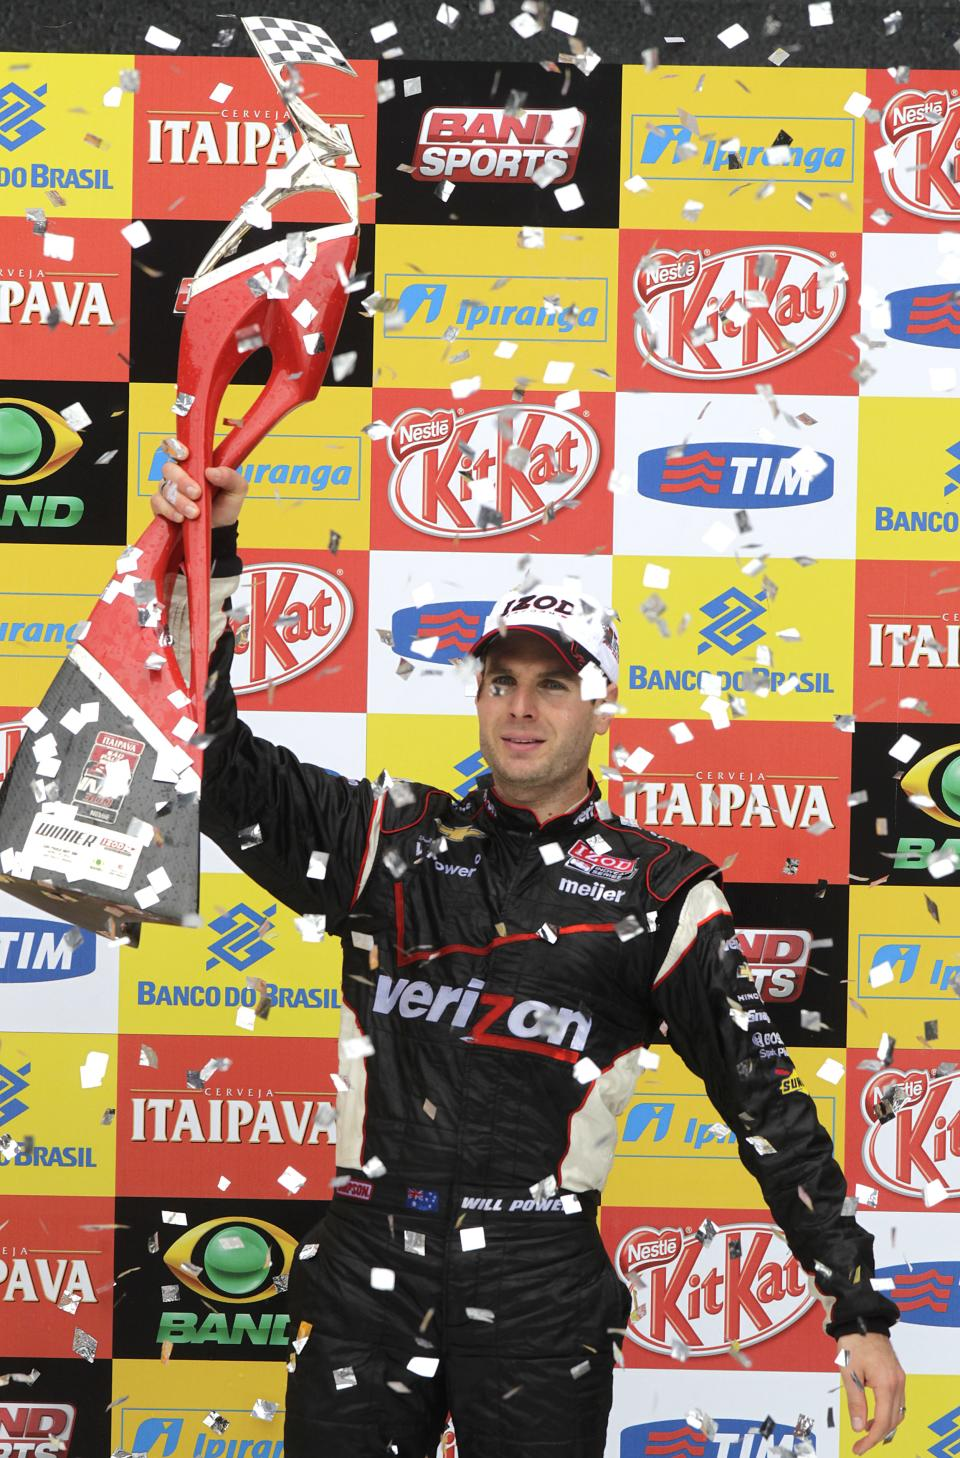 IndyCar driver Will Power, of Australia, celebrates after winning the the IndyCar Sao Paulo 300 in Sao Paulo, Brazil, Sunday, April 29, 2012. (AP Photo/Andre Penner)